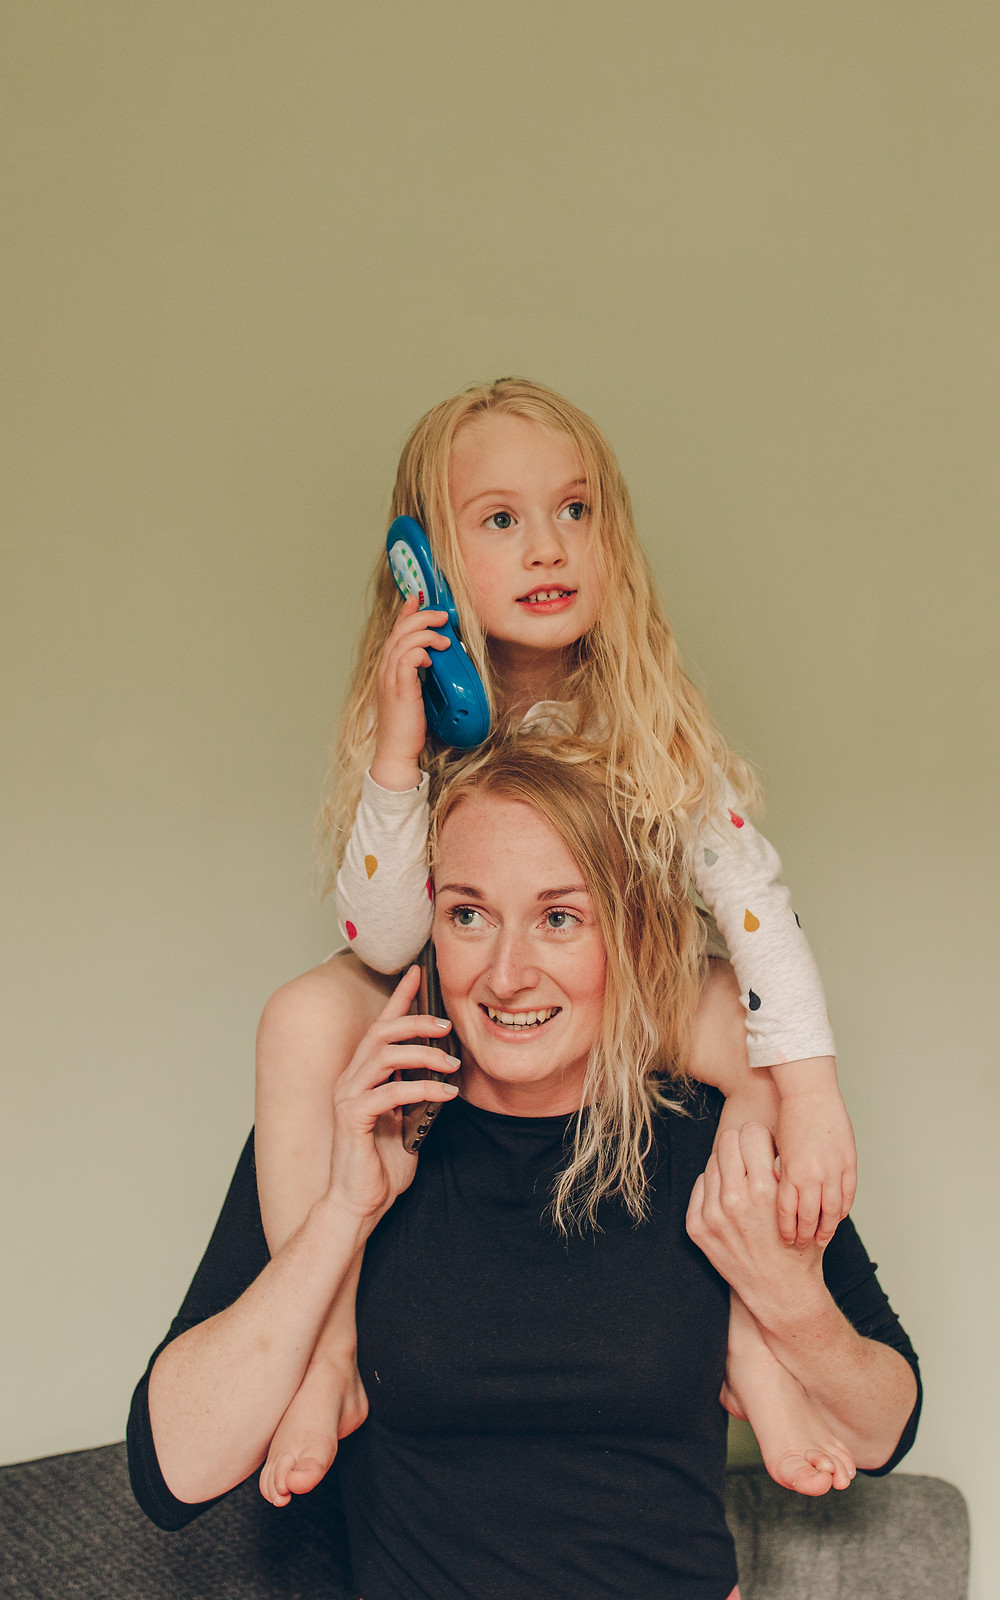 A woman is on the phone with her toddler daughter on her shoulders holding a toy phone and mimicking the pose